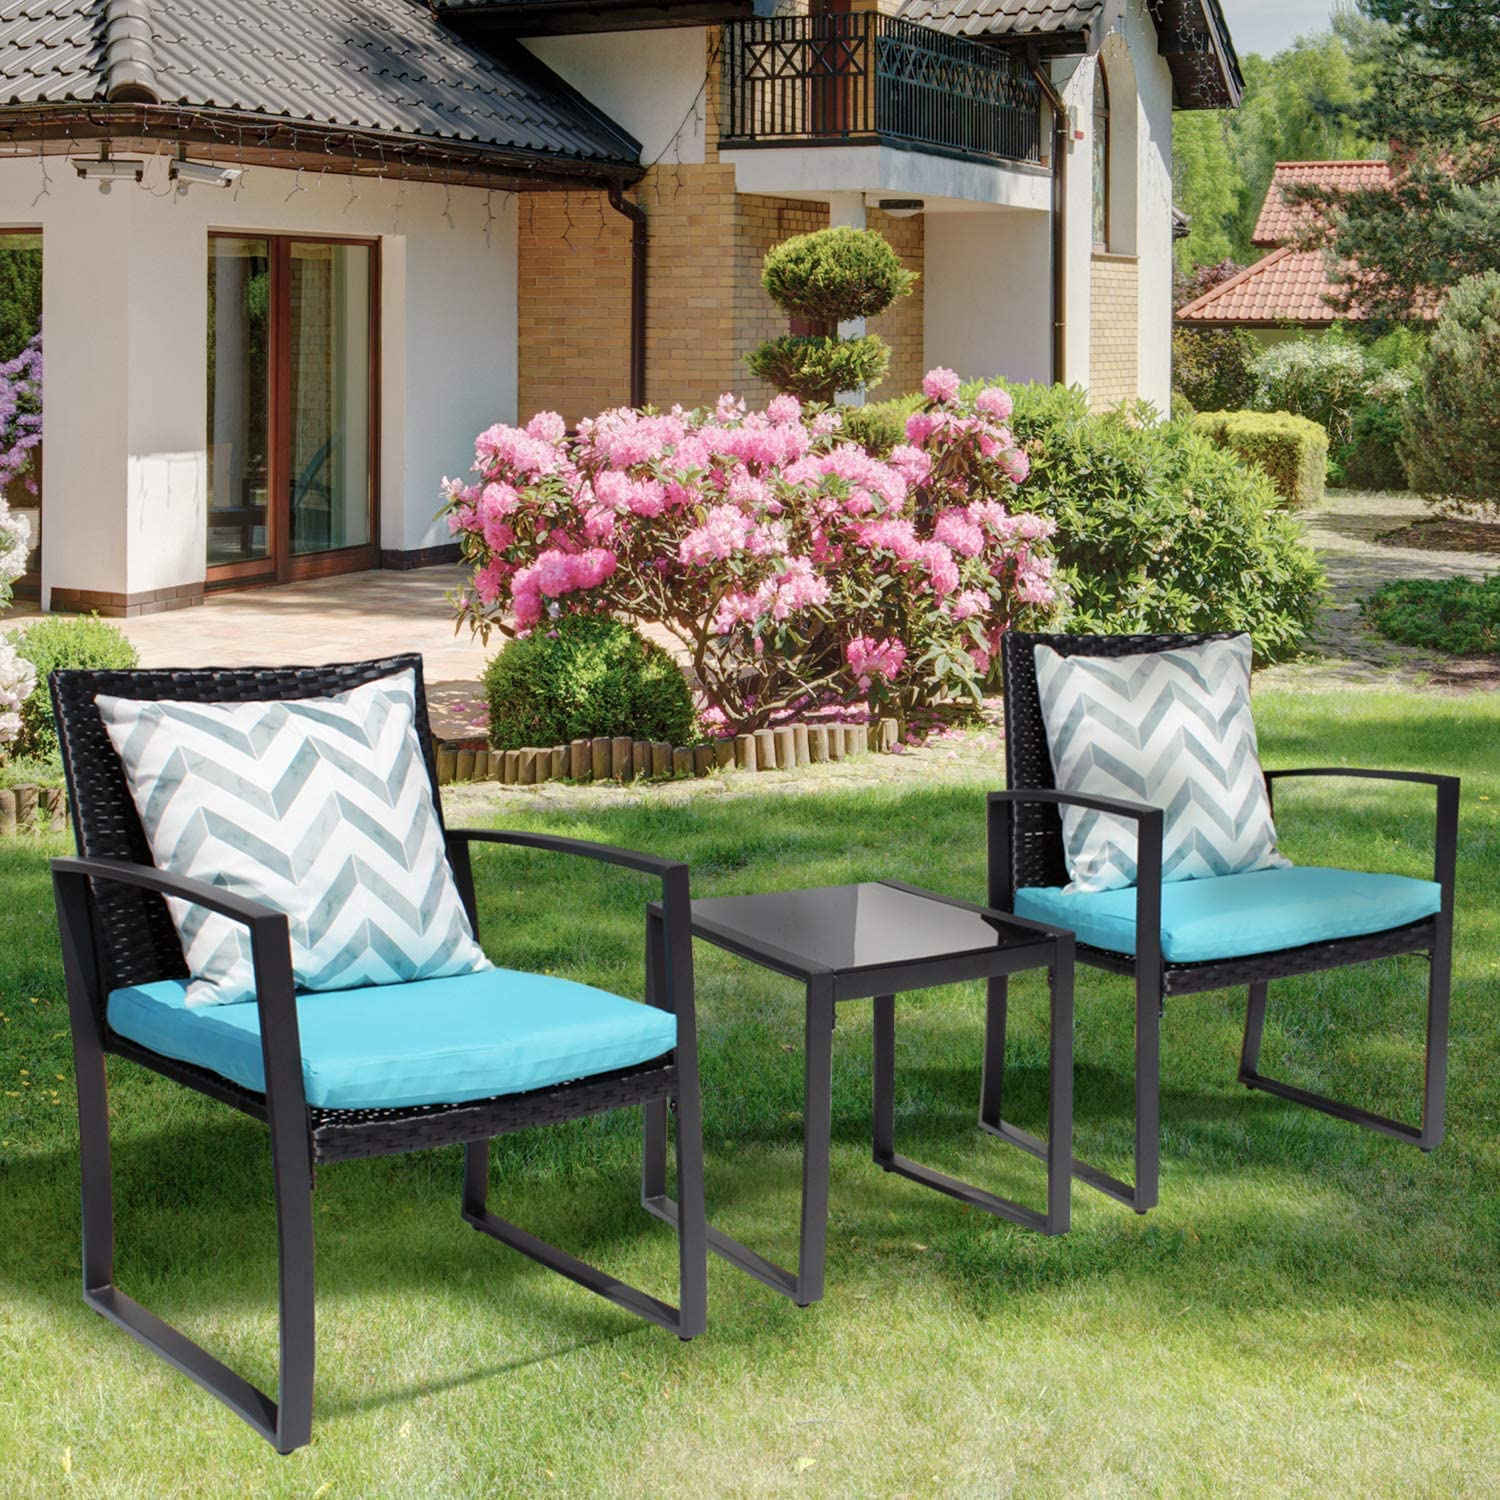 Pyramid Home Decor Black Wicker Furniture - 3 Piece Bistro Set for Outdoor Conversation - 2 Cushioned Rattan Chairs with Glass Coffee Table for Patio, Lawn, Porch, Lounge, Deck, Balcony & Living Room